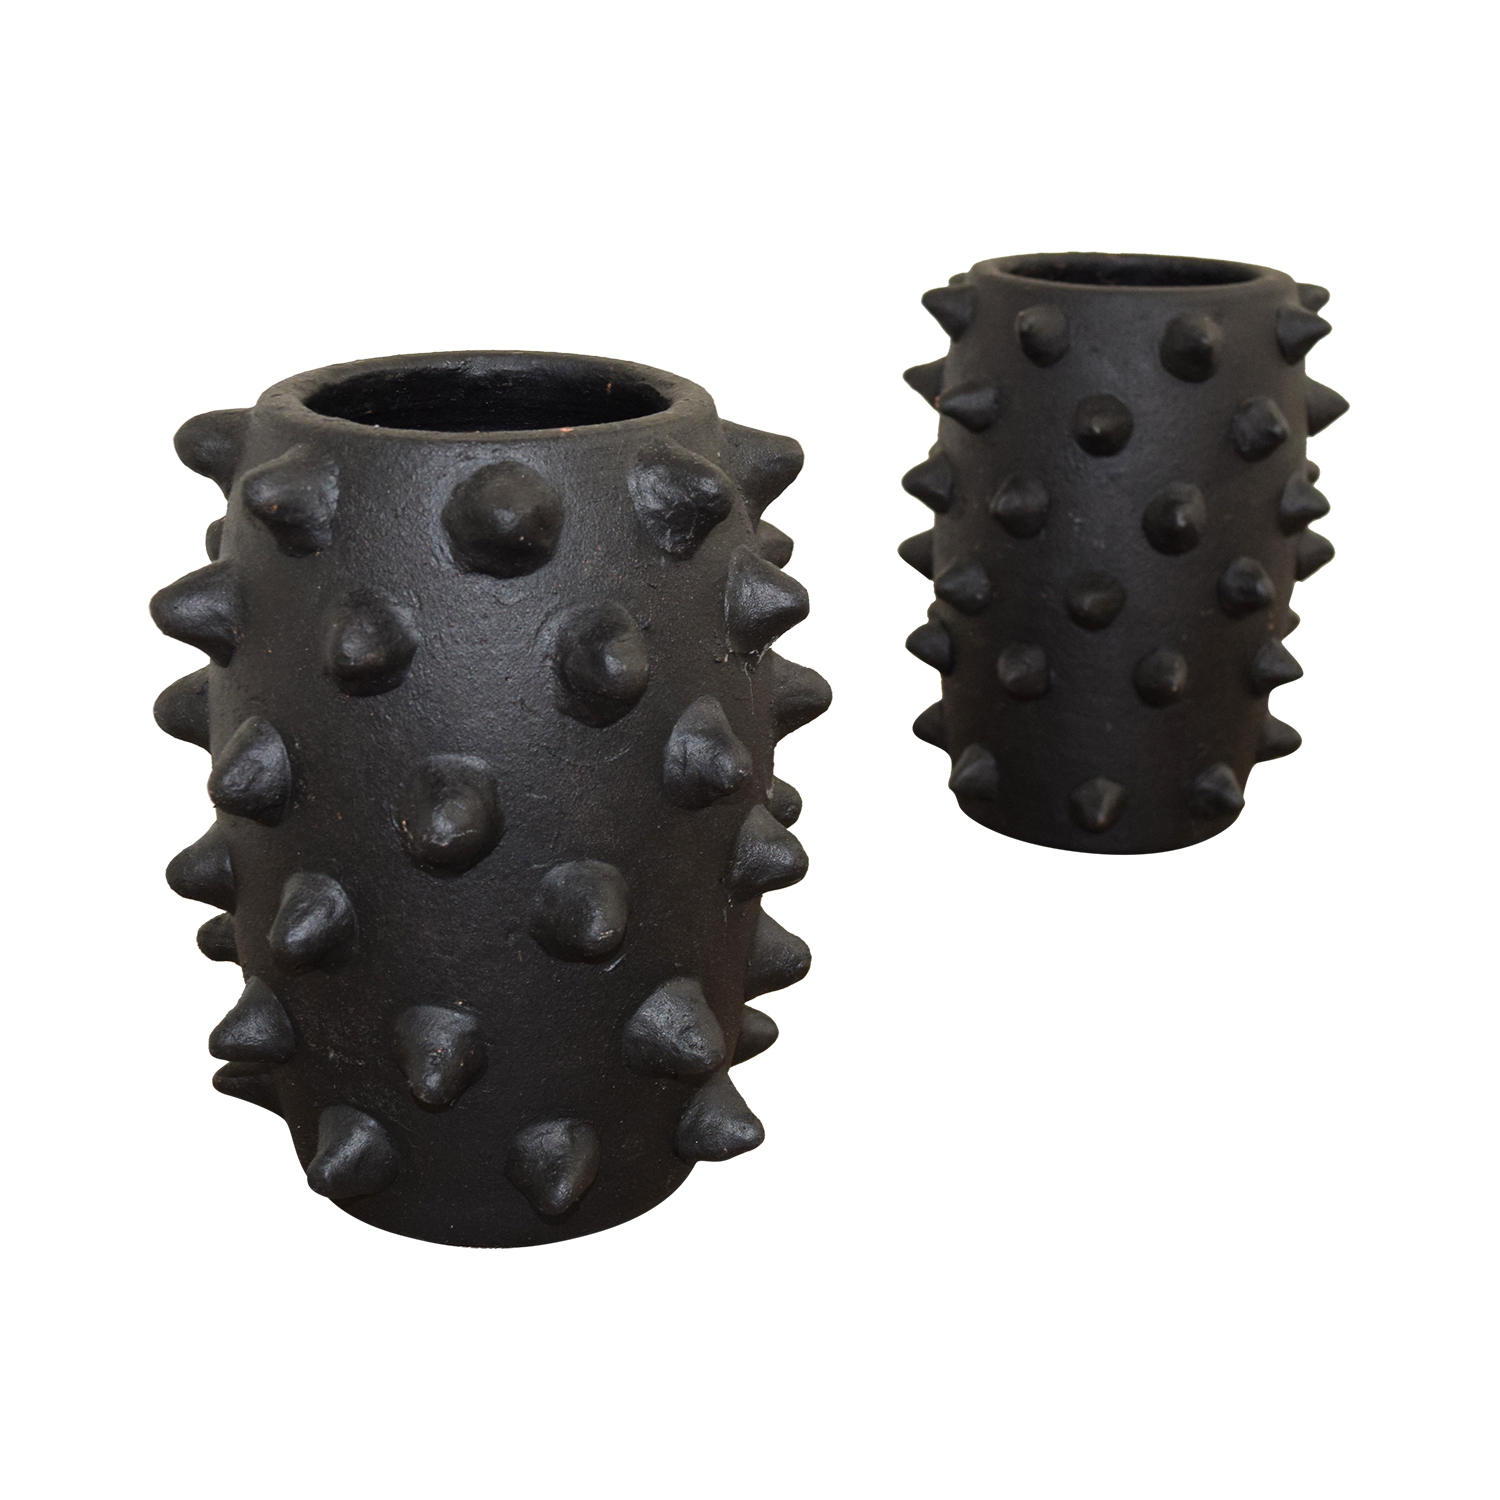 A & G Merch A & G Merch Black Spiked Vases coupon